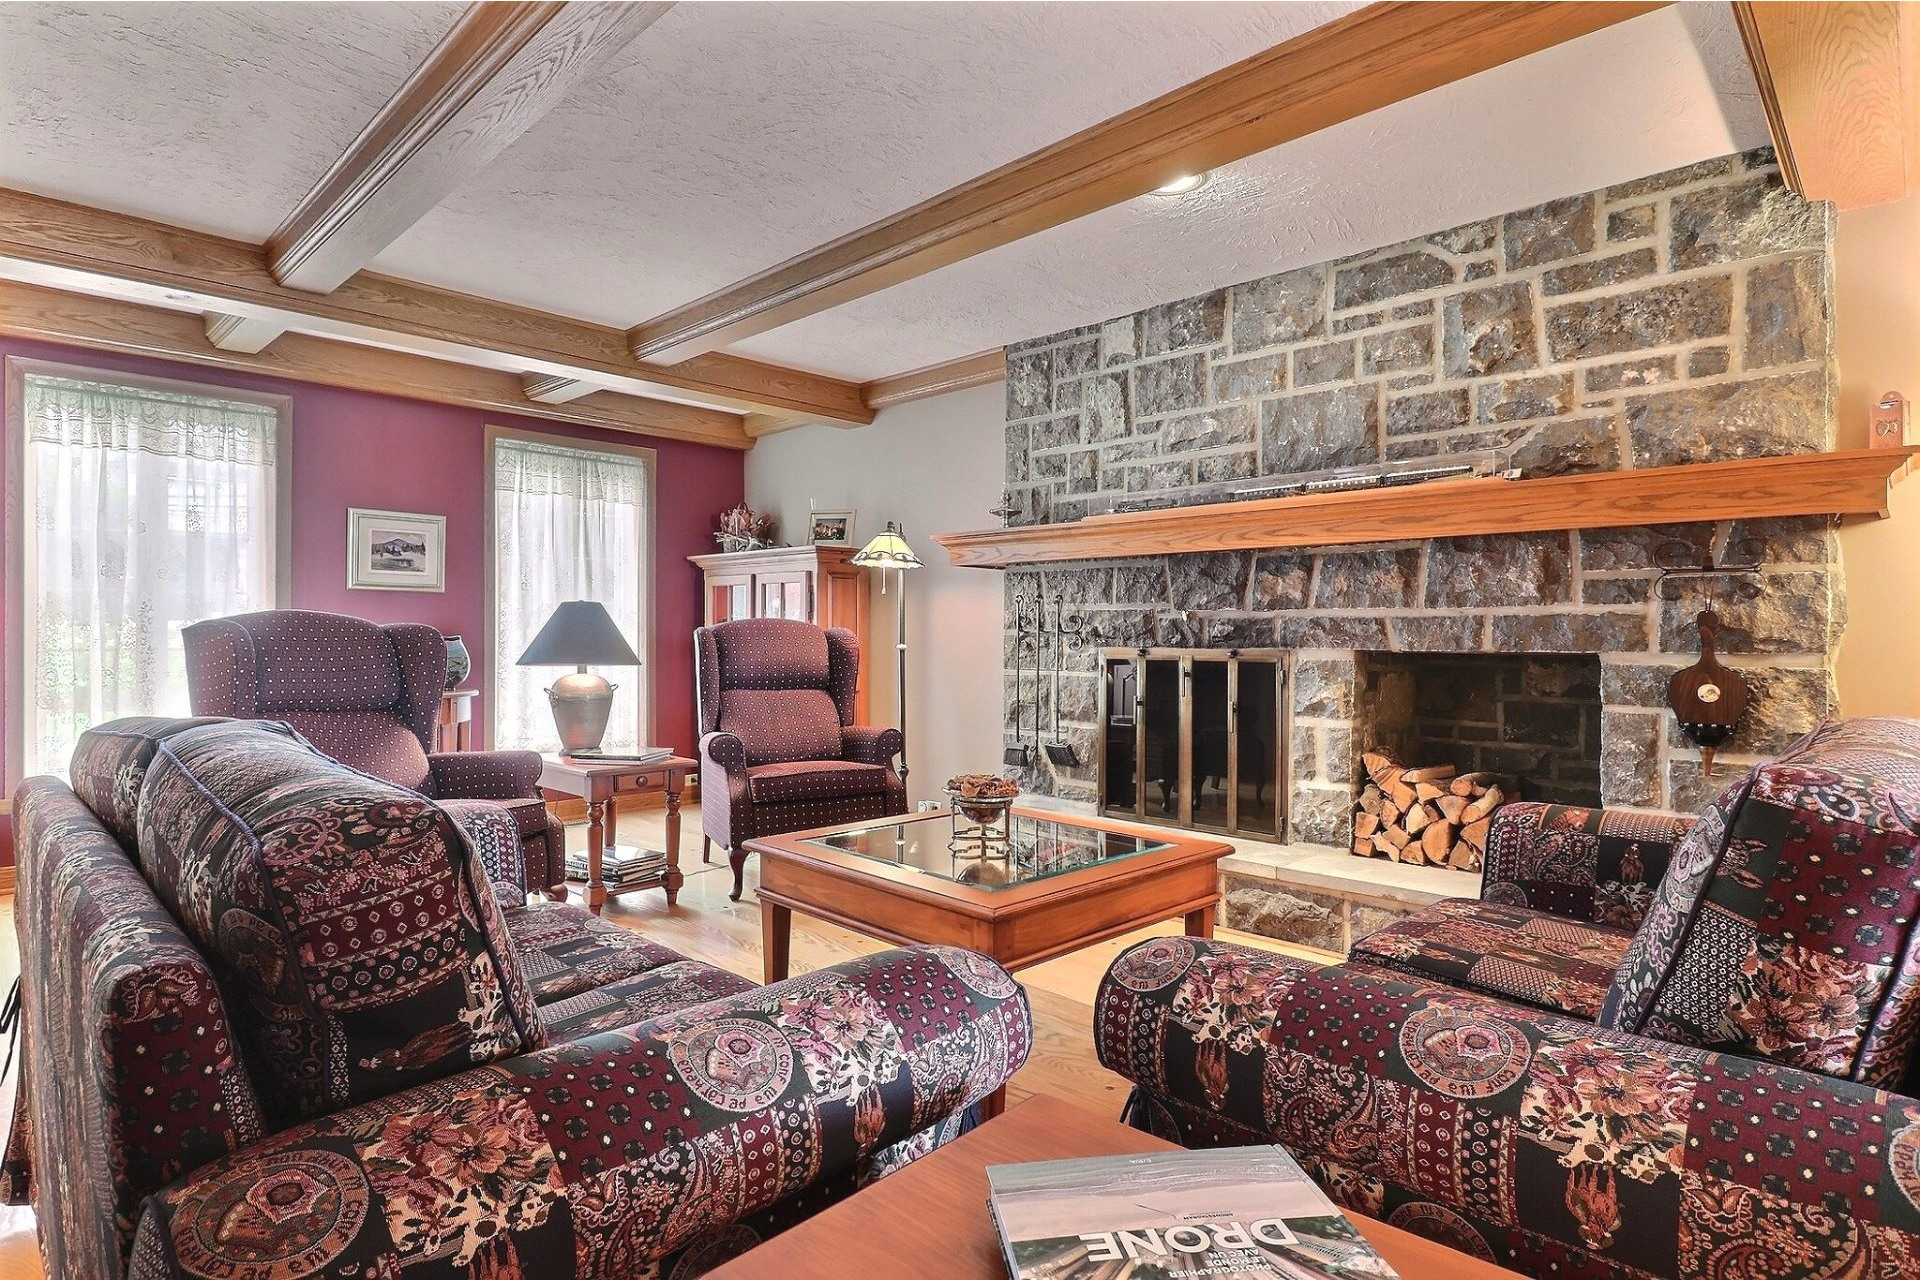 image 10 - House For sale Duvernay Laval